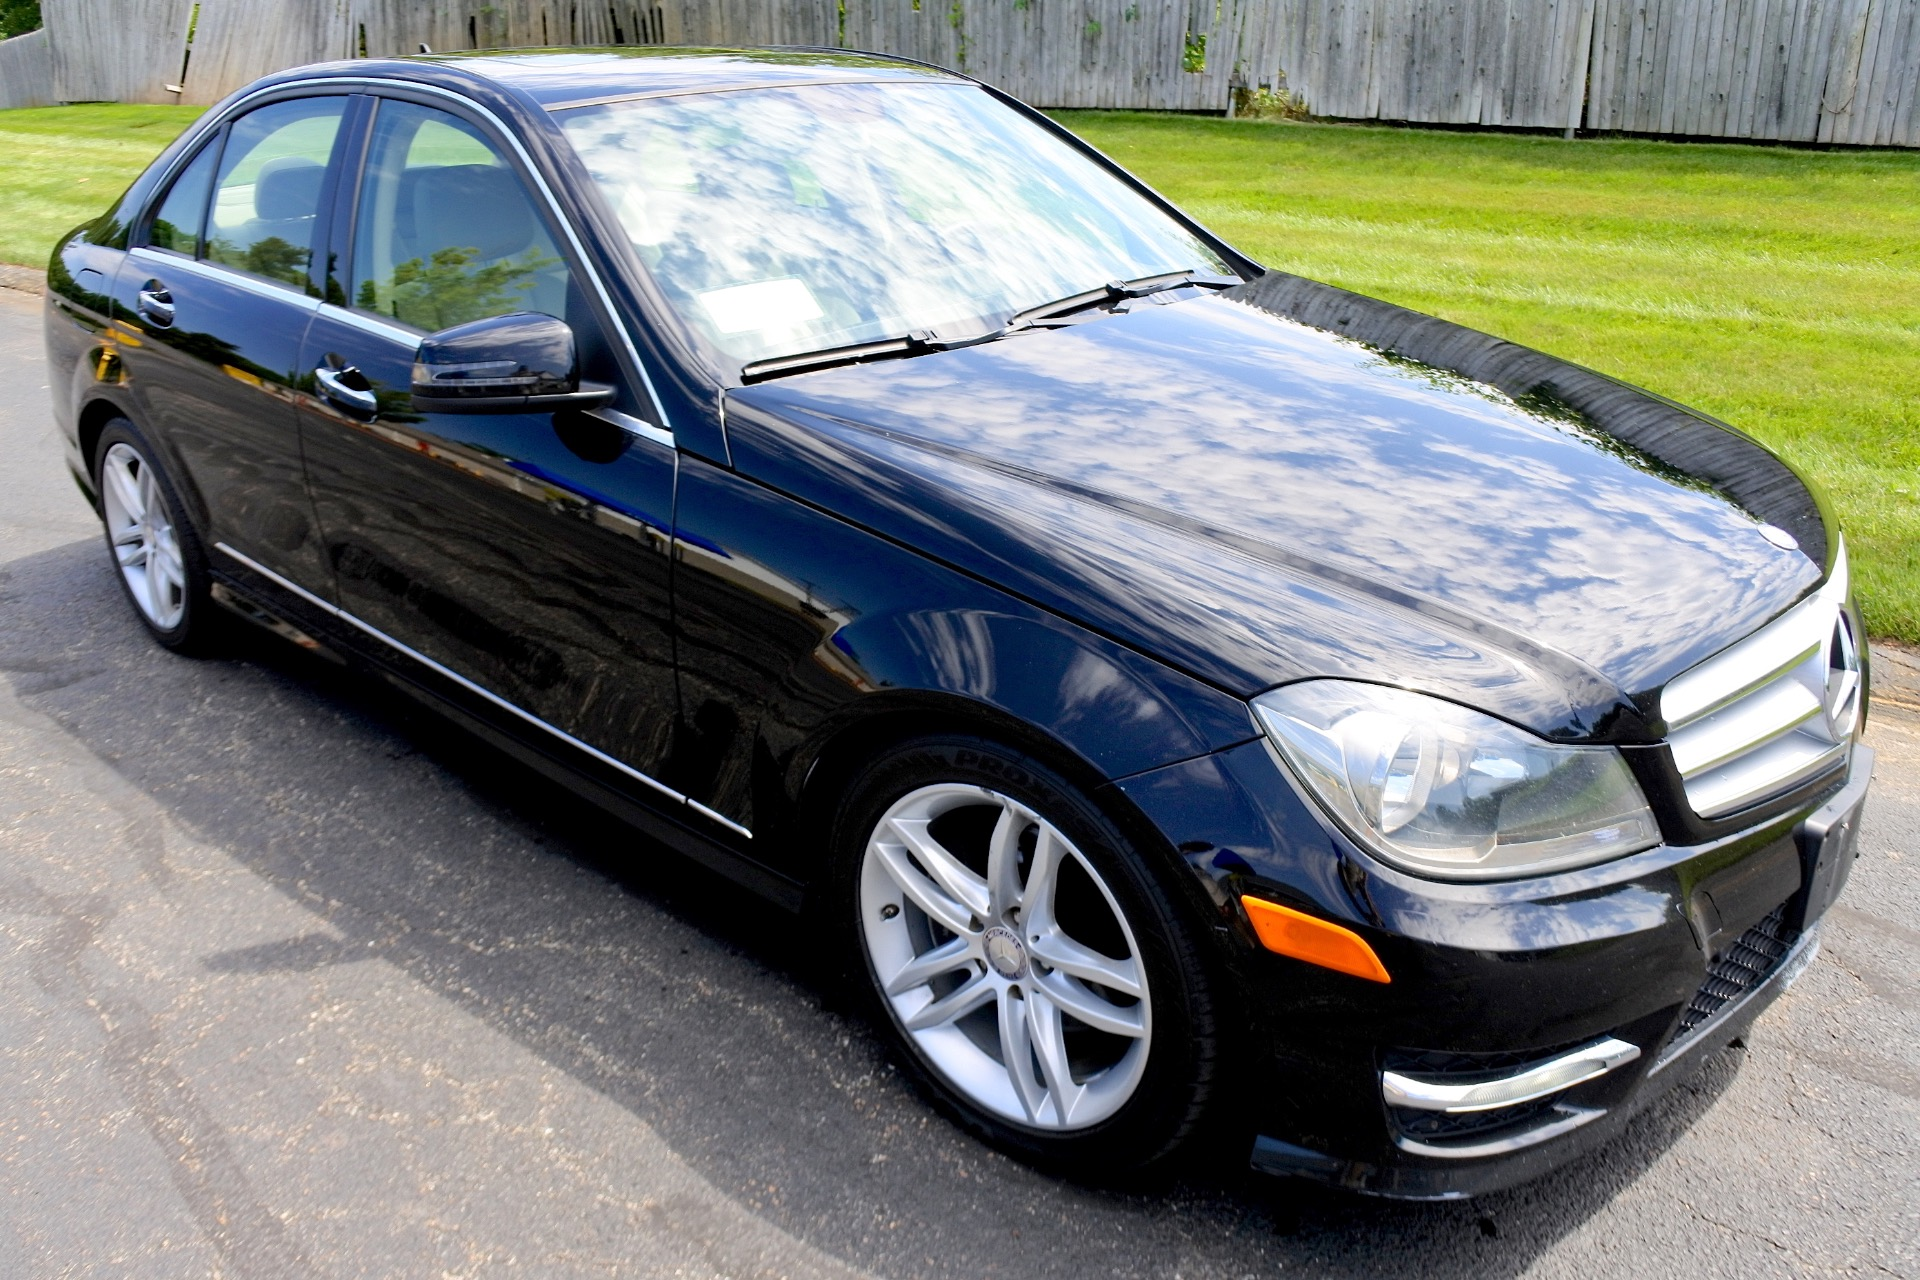 Used 2012 Mercedes-Benz C-class 4dr Sdn C300 Sport 4MATIC Used 2012 Mercedes-Benz C-class 4dr Sdn C300 Sport 4MATIC for sale  at Metro West Motorcars LLC in Shrewsbury MA 7